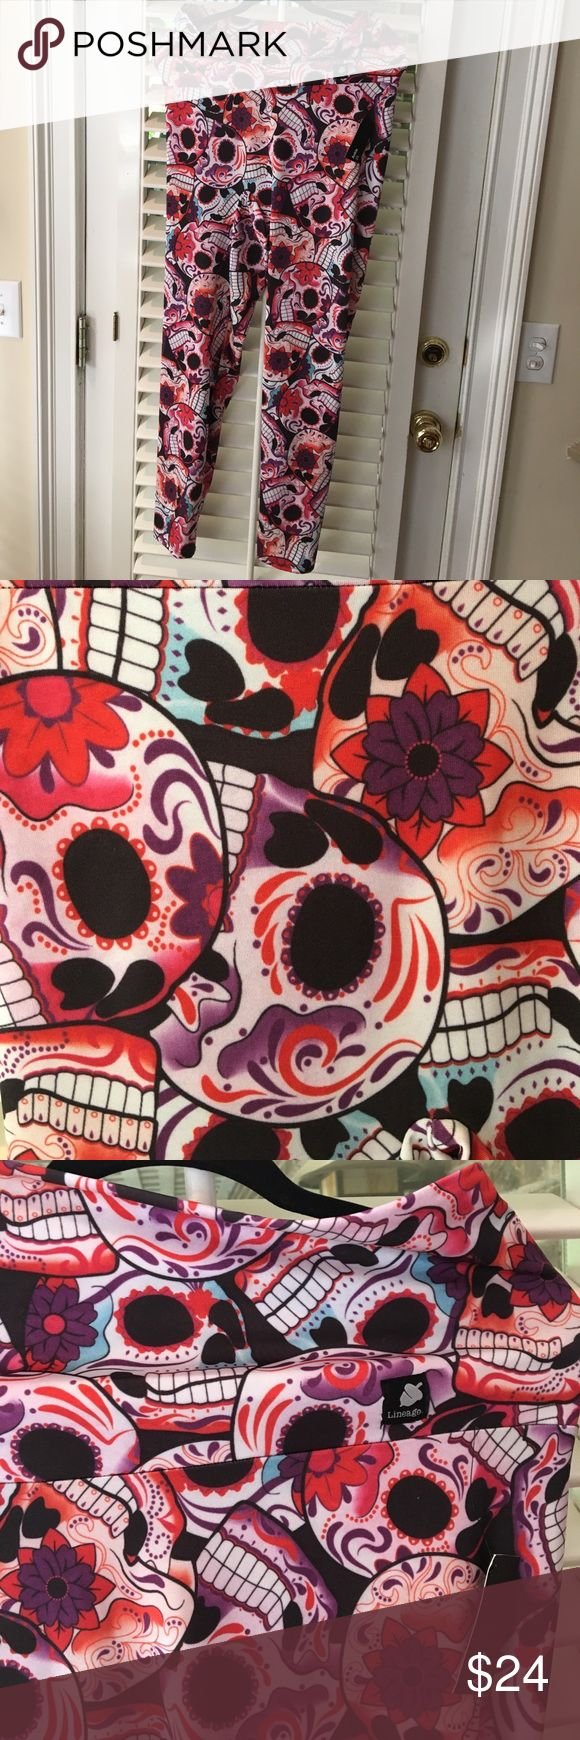 NWT Day of dead skeleton 2x ankle yoga leggings These are so cool! NWT Lineage brand 2x ankle-length yoga pants. The Day of the Dead skeleton print in red and purple is amazing! Tall yoga waist band can be worn up or folded over. Very comfy and you'll be the envy of your workout group! Also would be fantastic under a black tunic. Lineage Pants Leggings